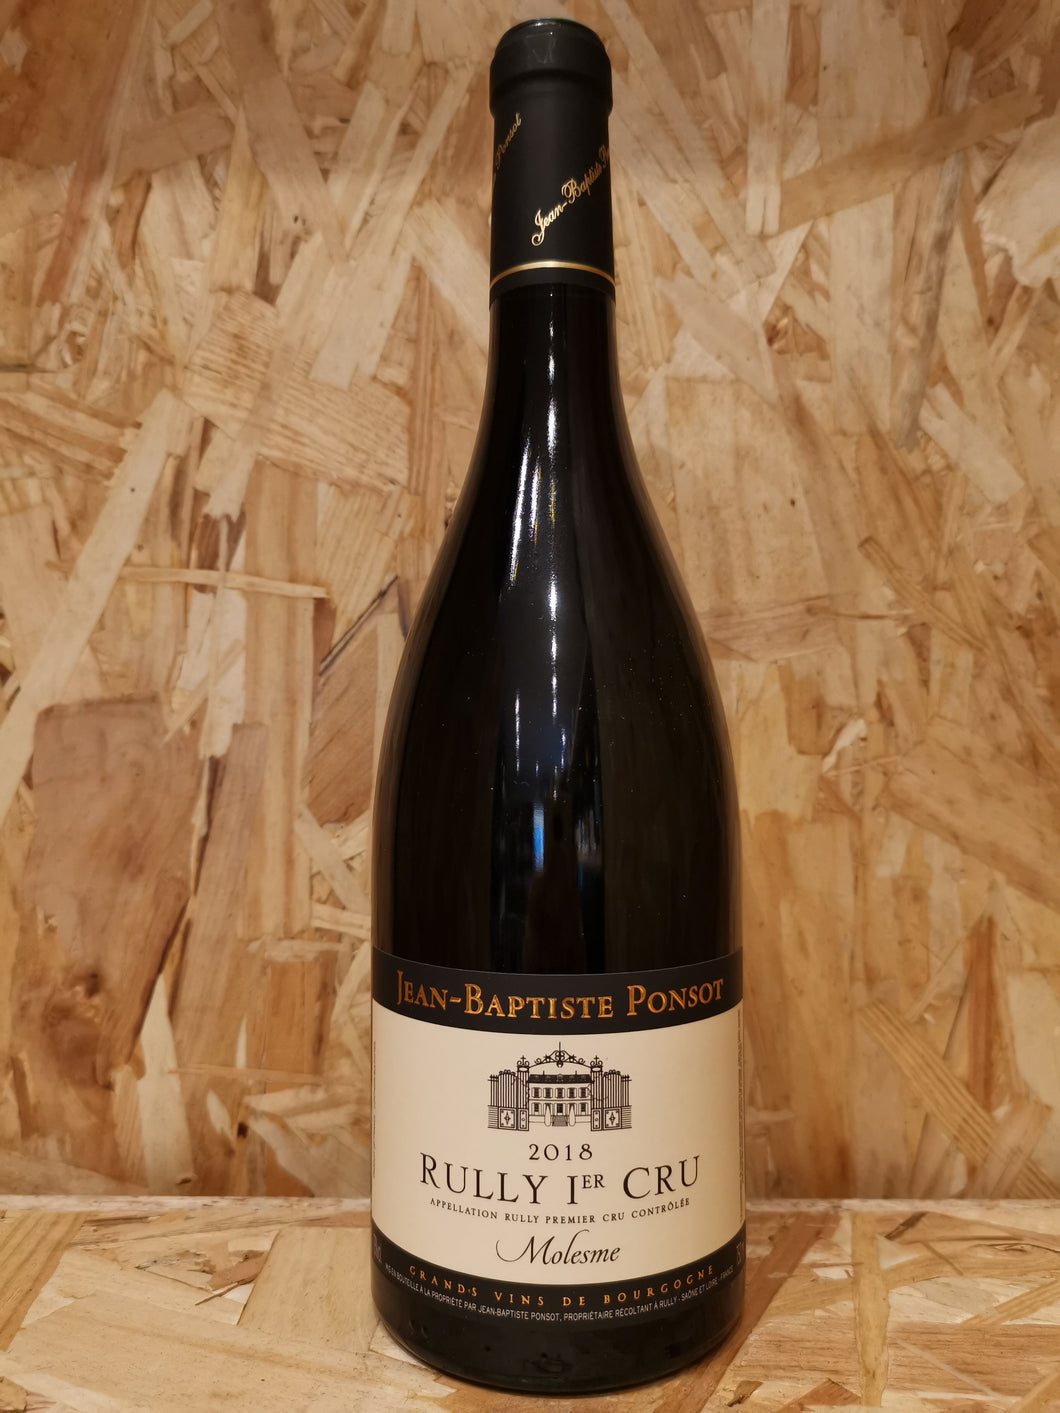 Rully 1er Cru Rouge Molesme 2018 150 cL